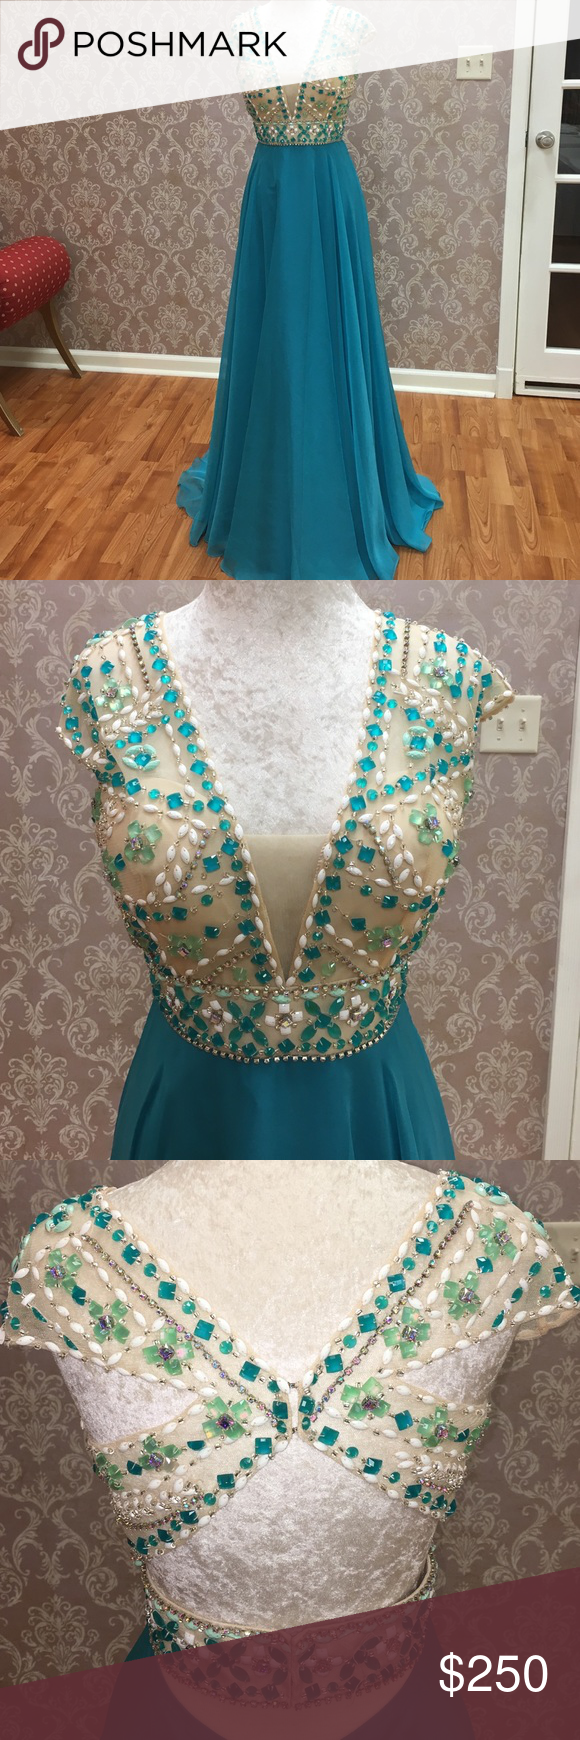 """Rachel Allan Chiffon Formal/Military Ball Dress ❤️ Teal, chiffon beaded dress. Has been tried on a few times and has missing beads but does come with extras. The dress is a size 10 with size 37"""" bust, 29"""" waist, 40"""" hips and 60"""" in length. Rachel Allan Dresses Prom"""